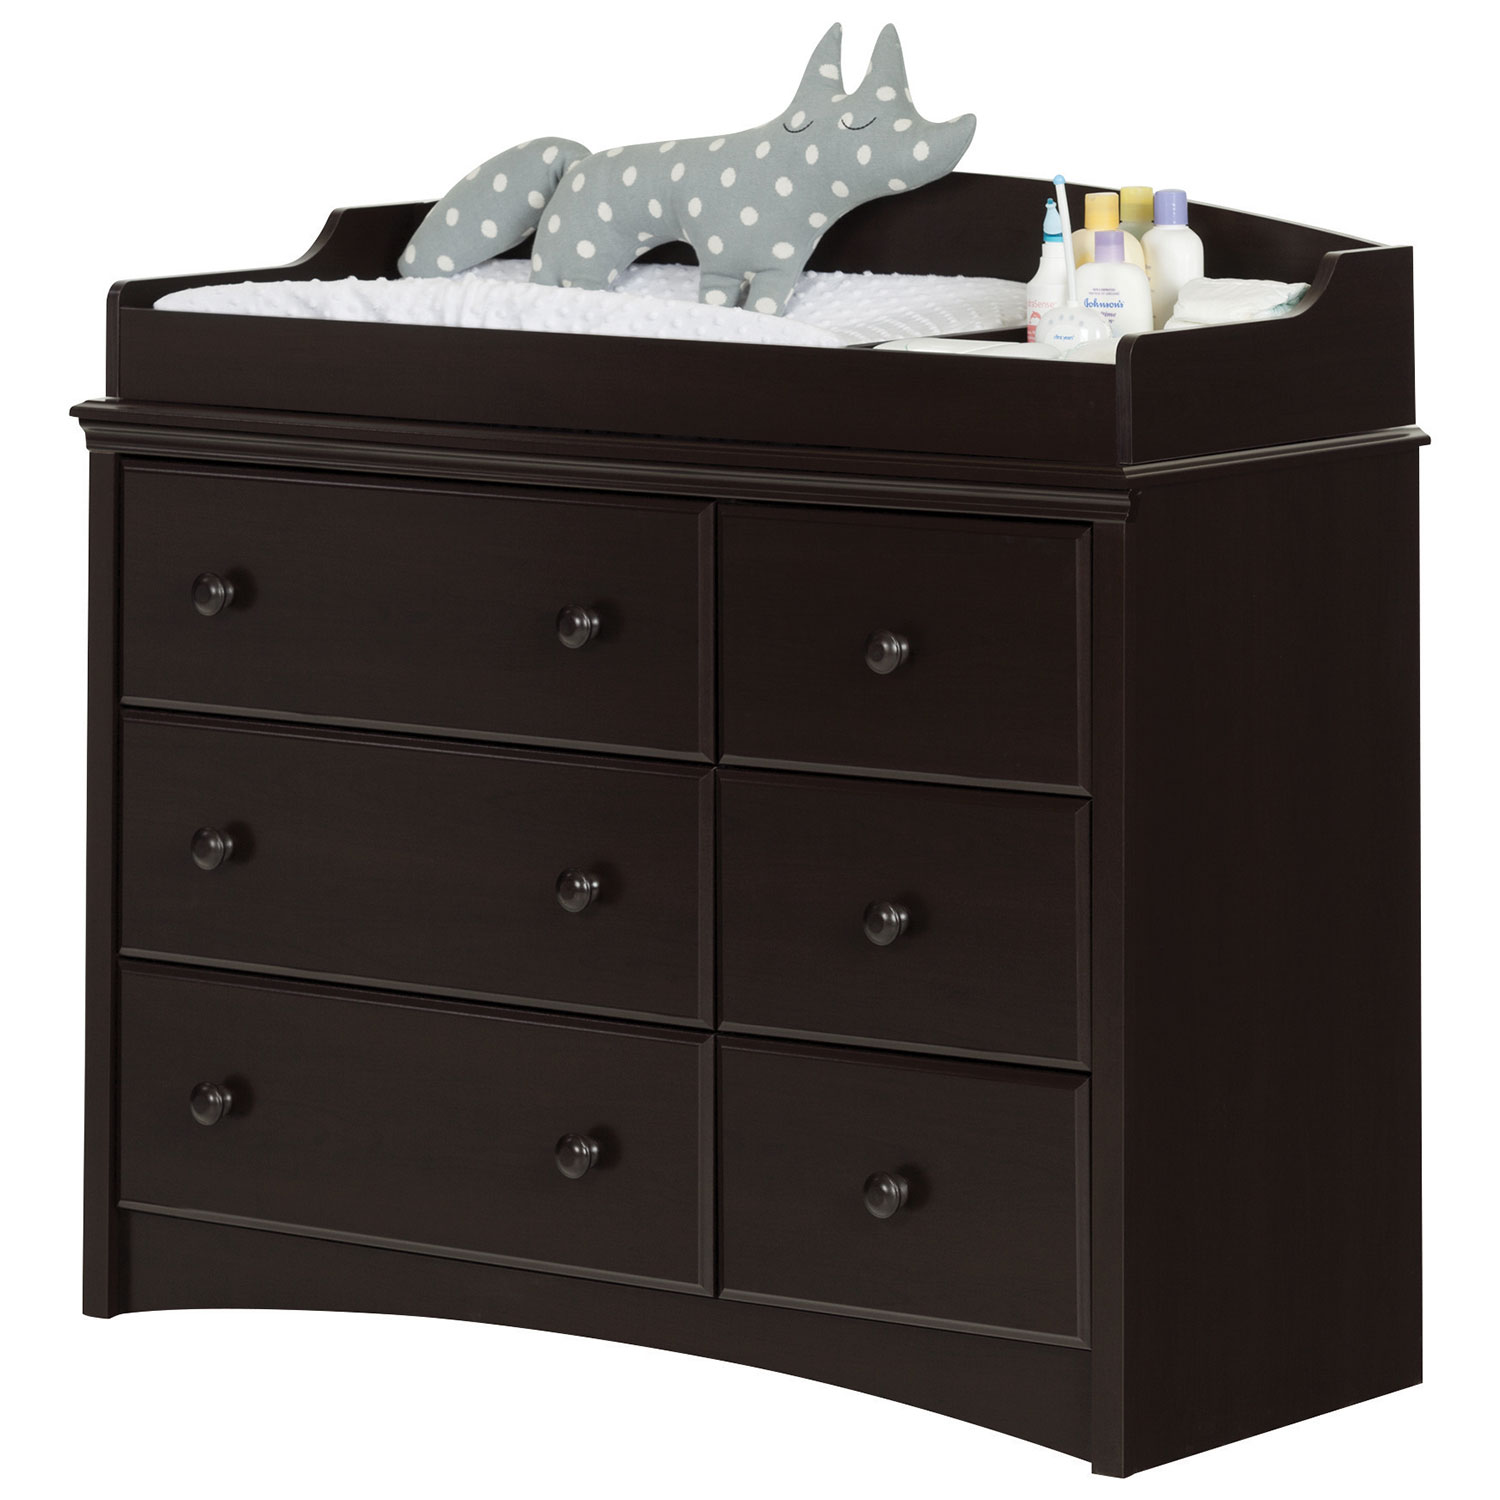 south shore angel changing tabledresser with  drawers  espresso  - south shore angel changing tabledresser with  drawers  espresso  changetables  best buy canada